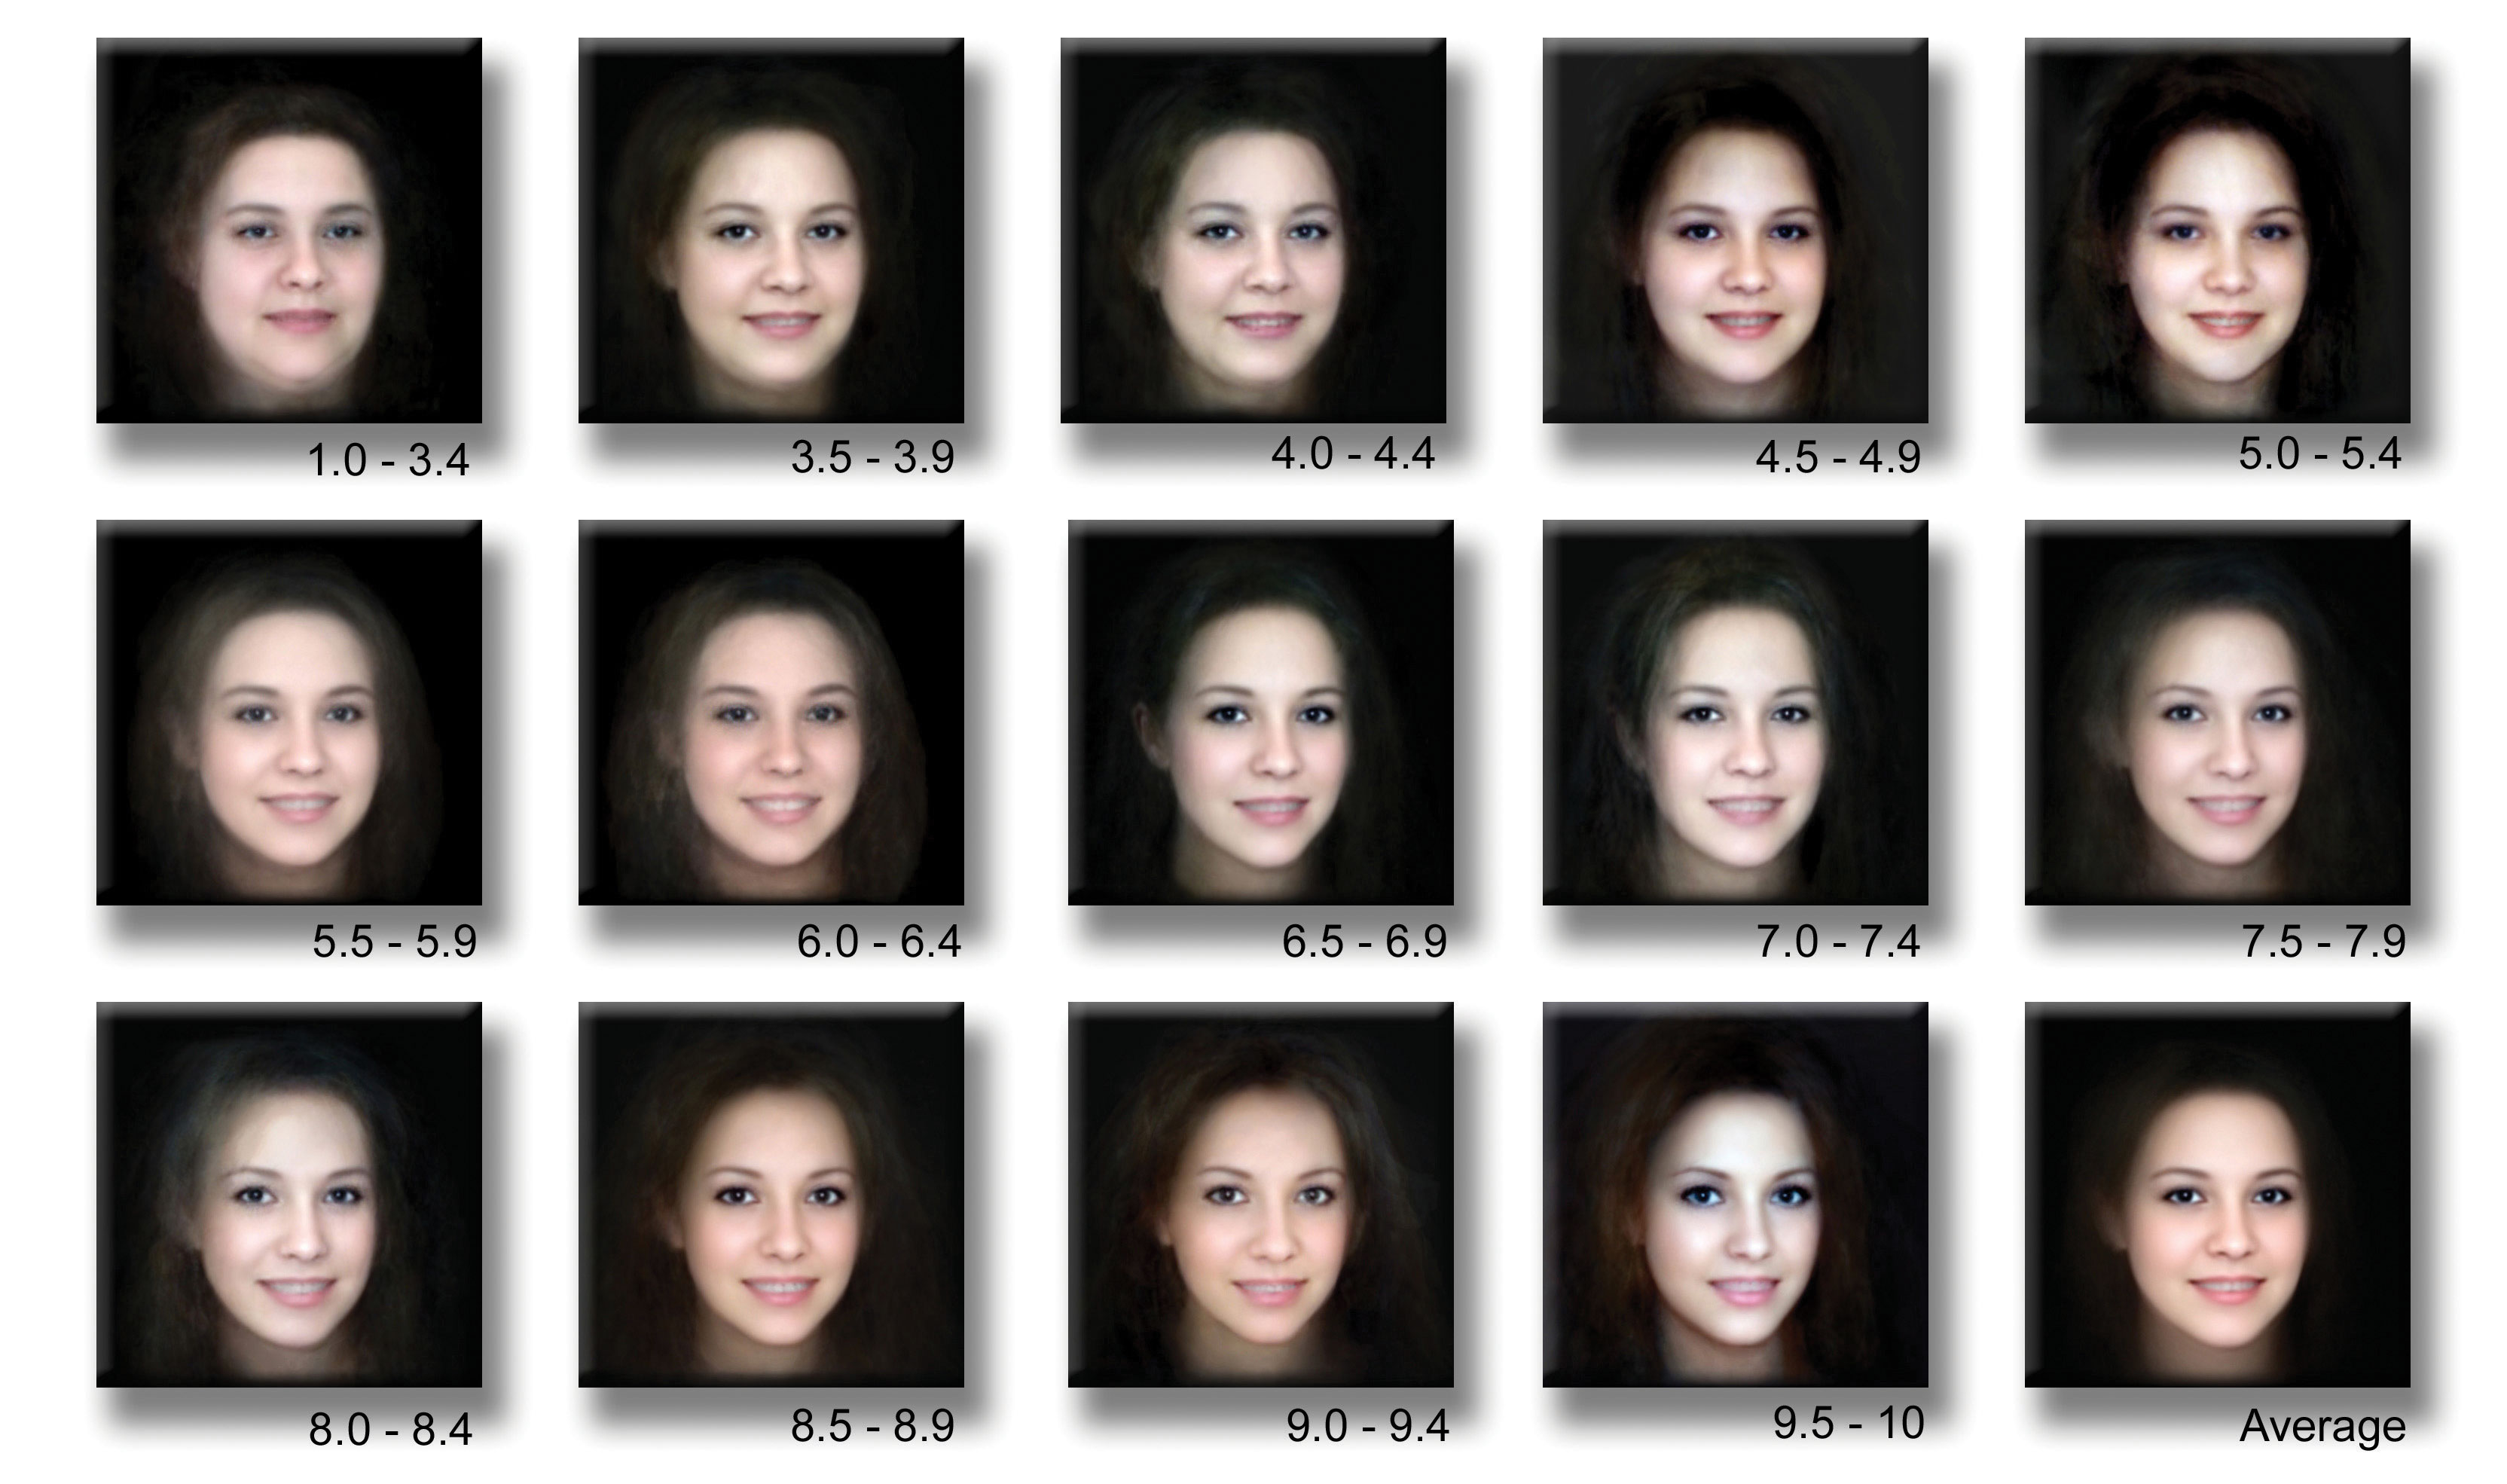 These images, from hotornot.com present differences in facial averageness.